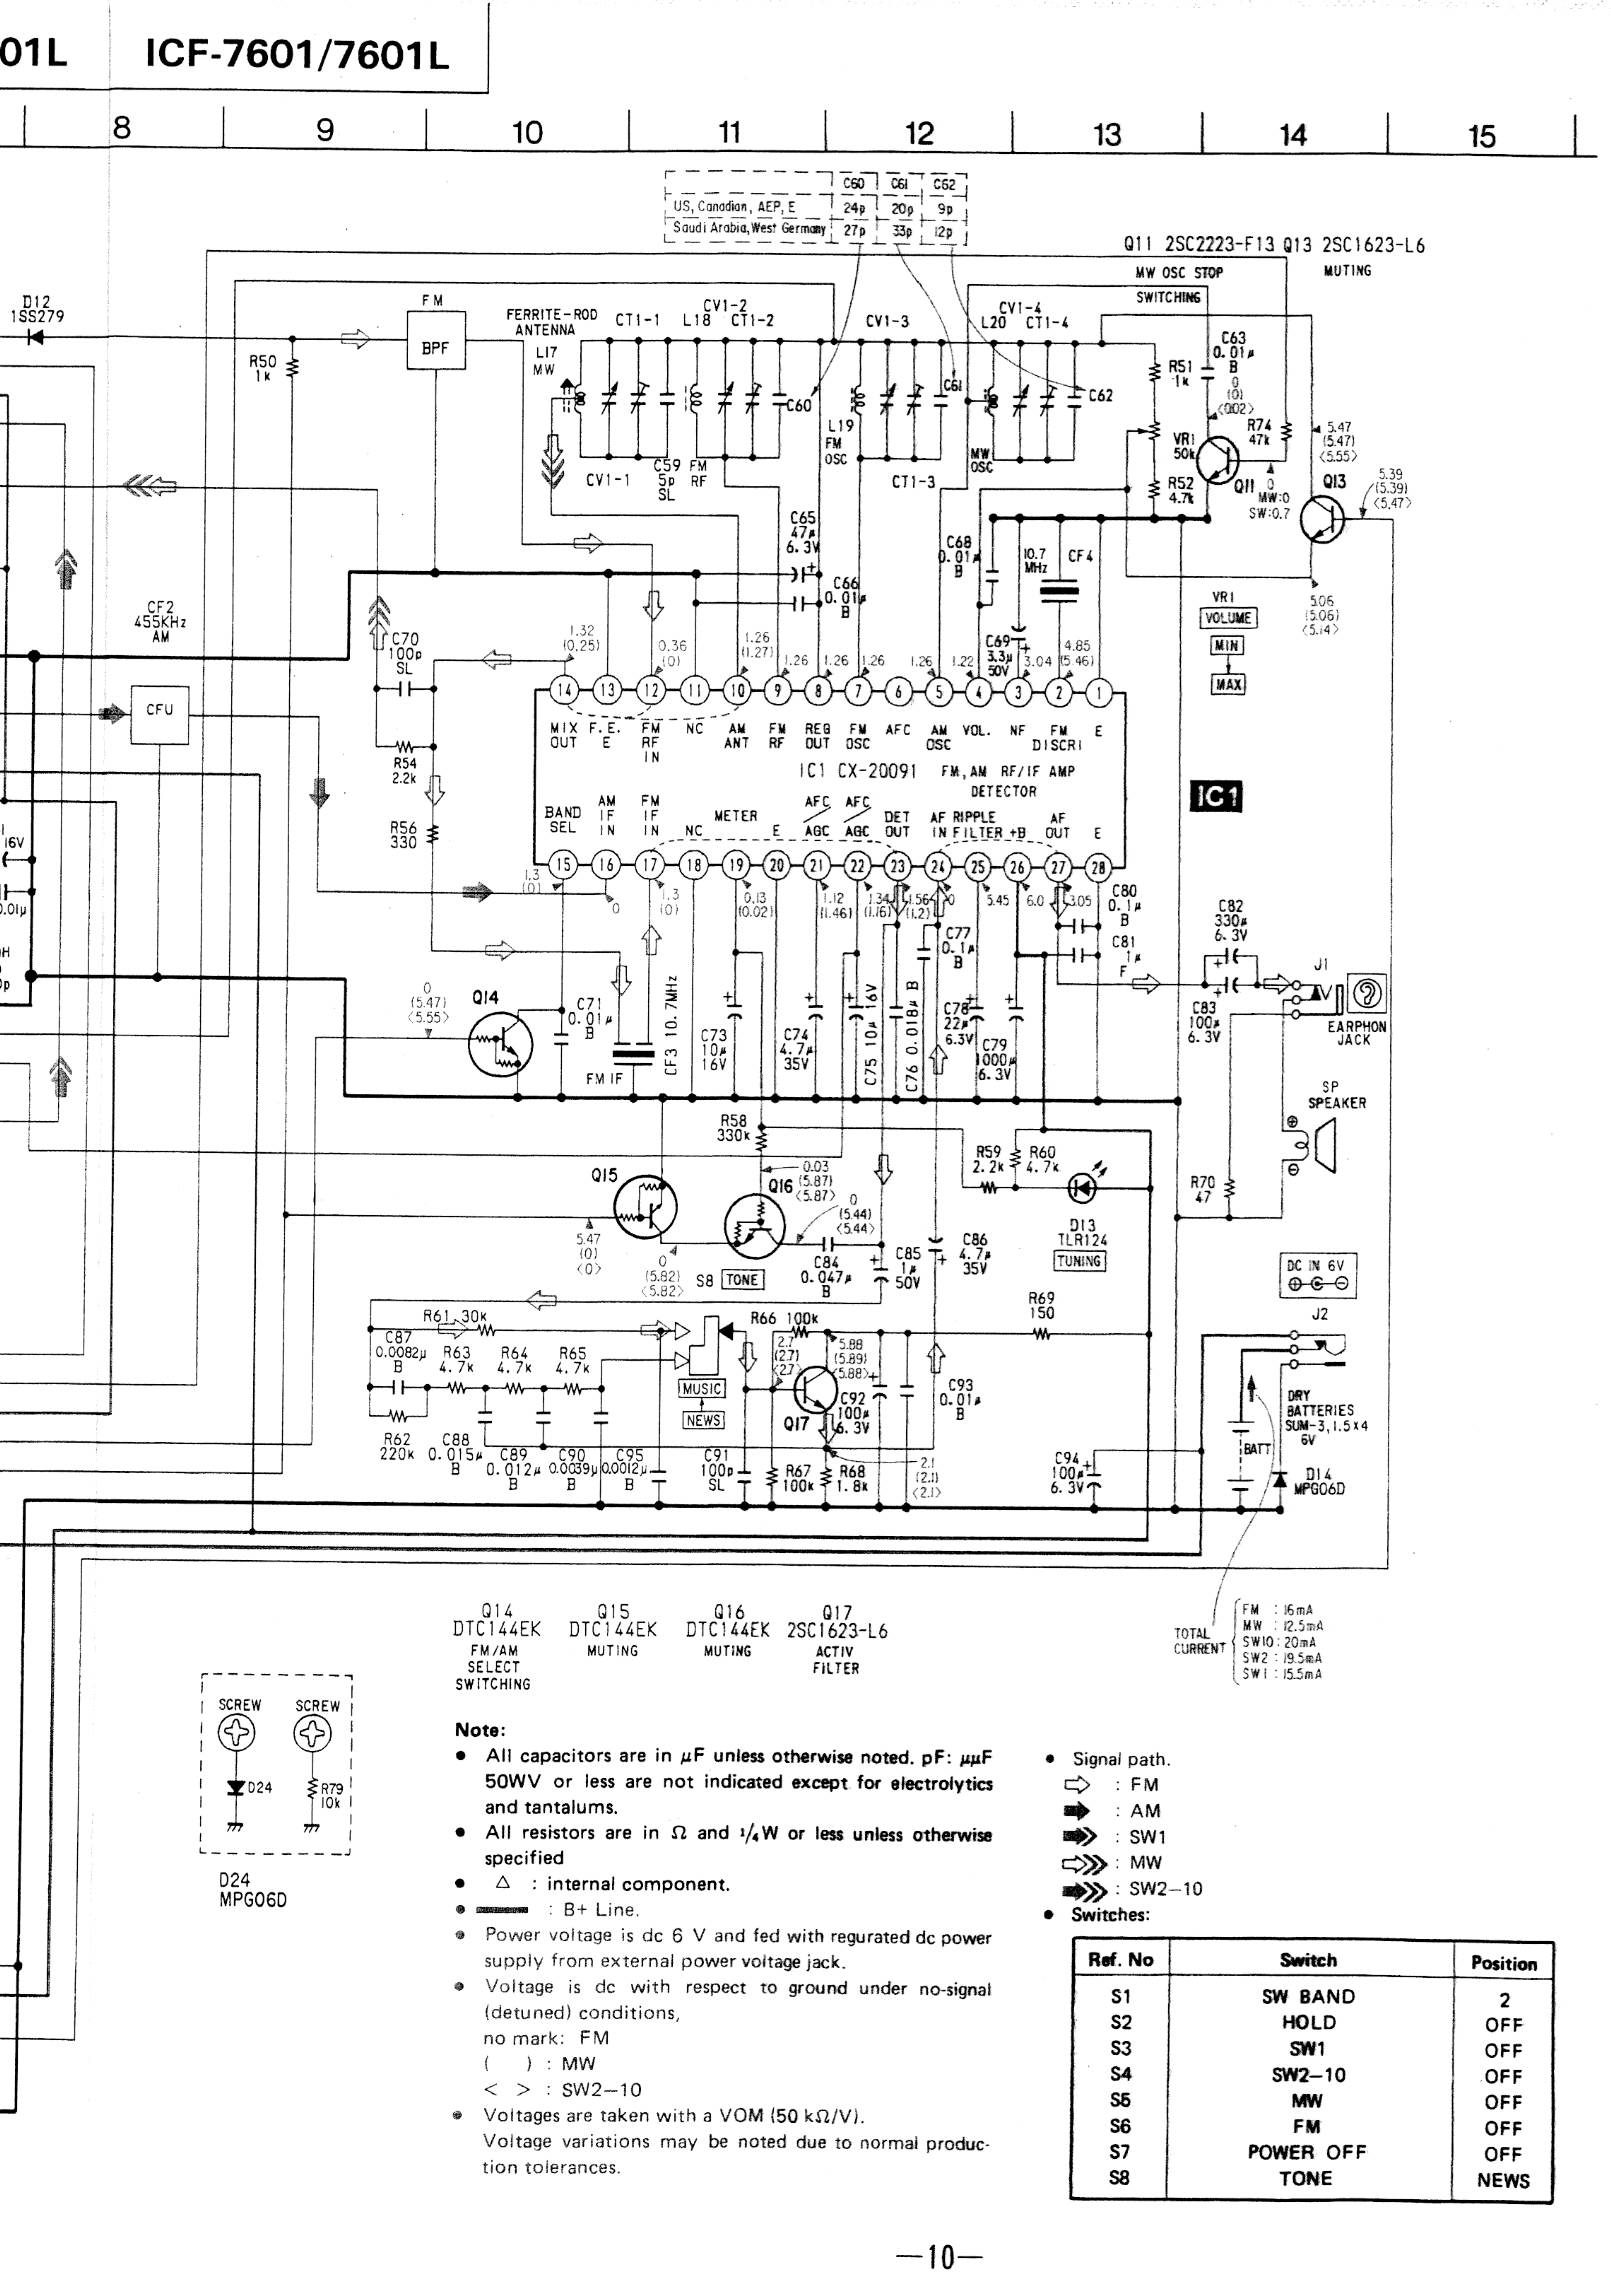 Ford 7600 Wiring Diagram Schematics Diagrams 5600 Tractor 1984 Ranger Stereo Free Engine F 150